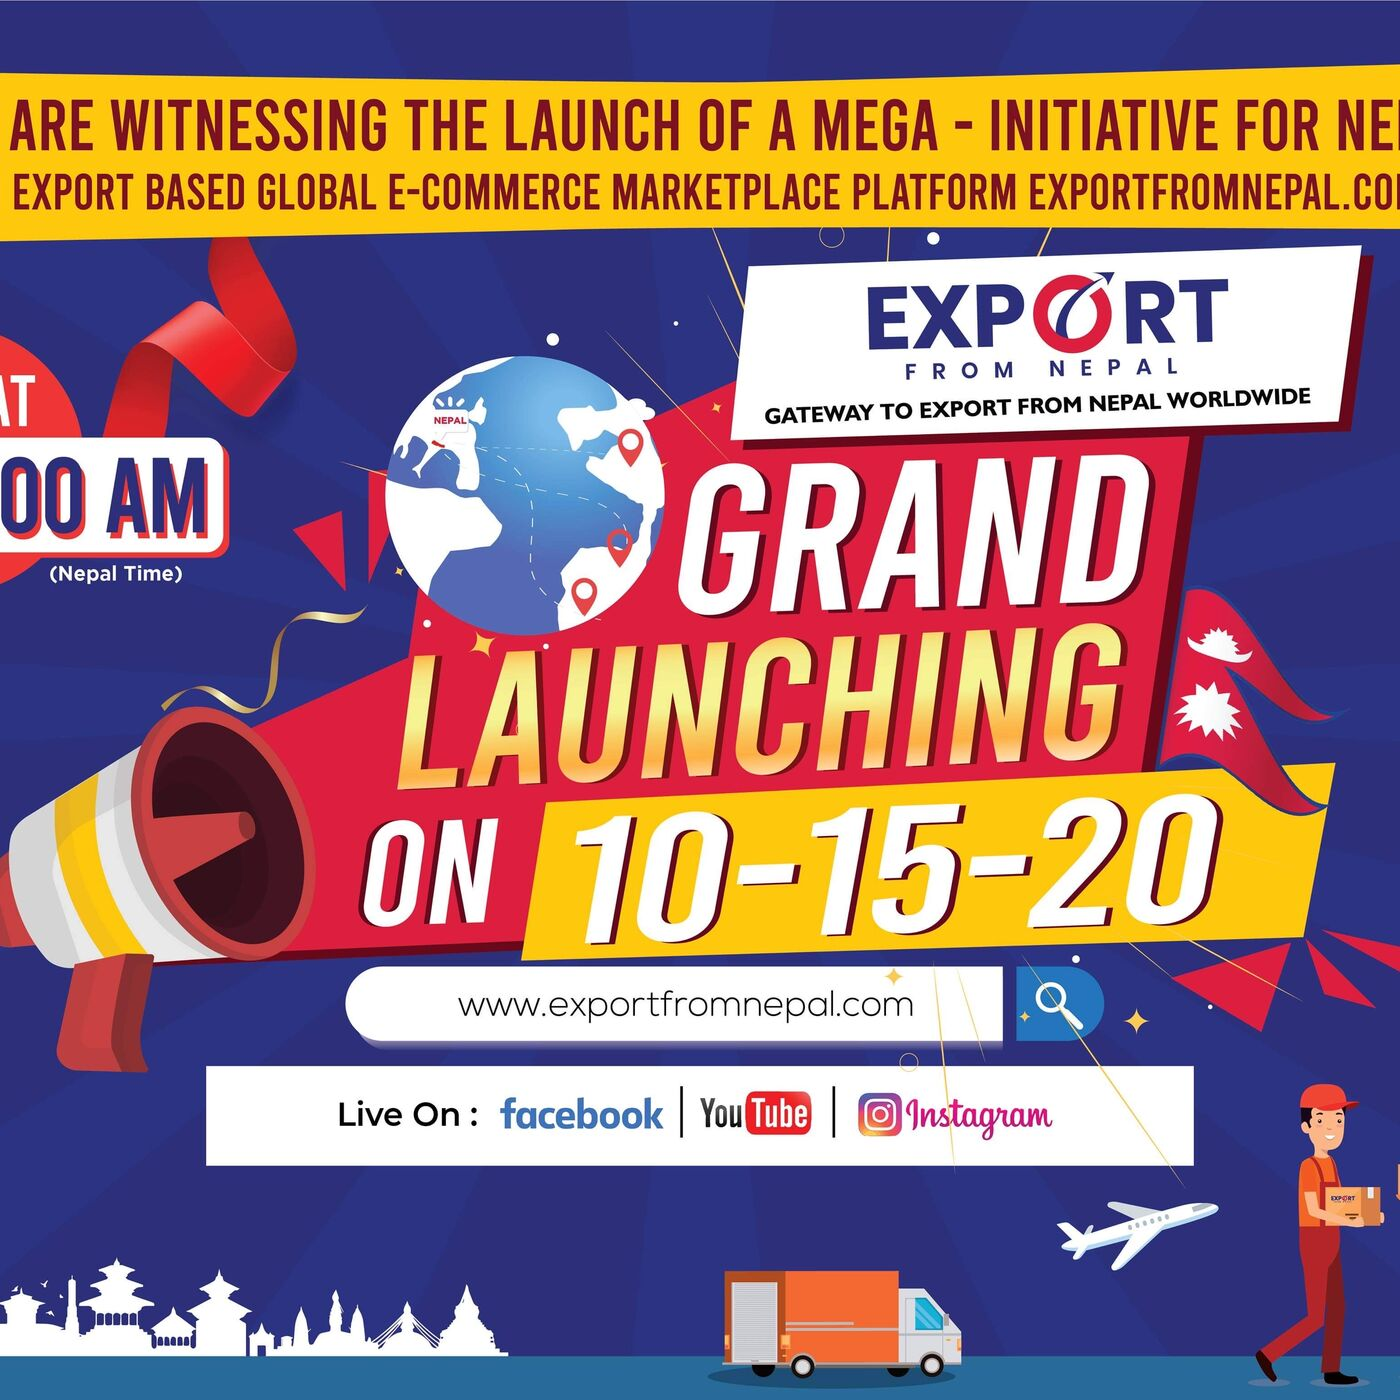 Export From Nepal - Grand Platform Launch